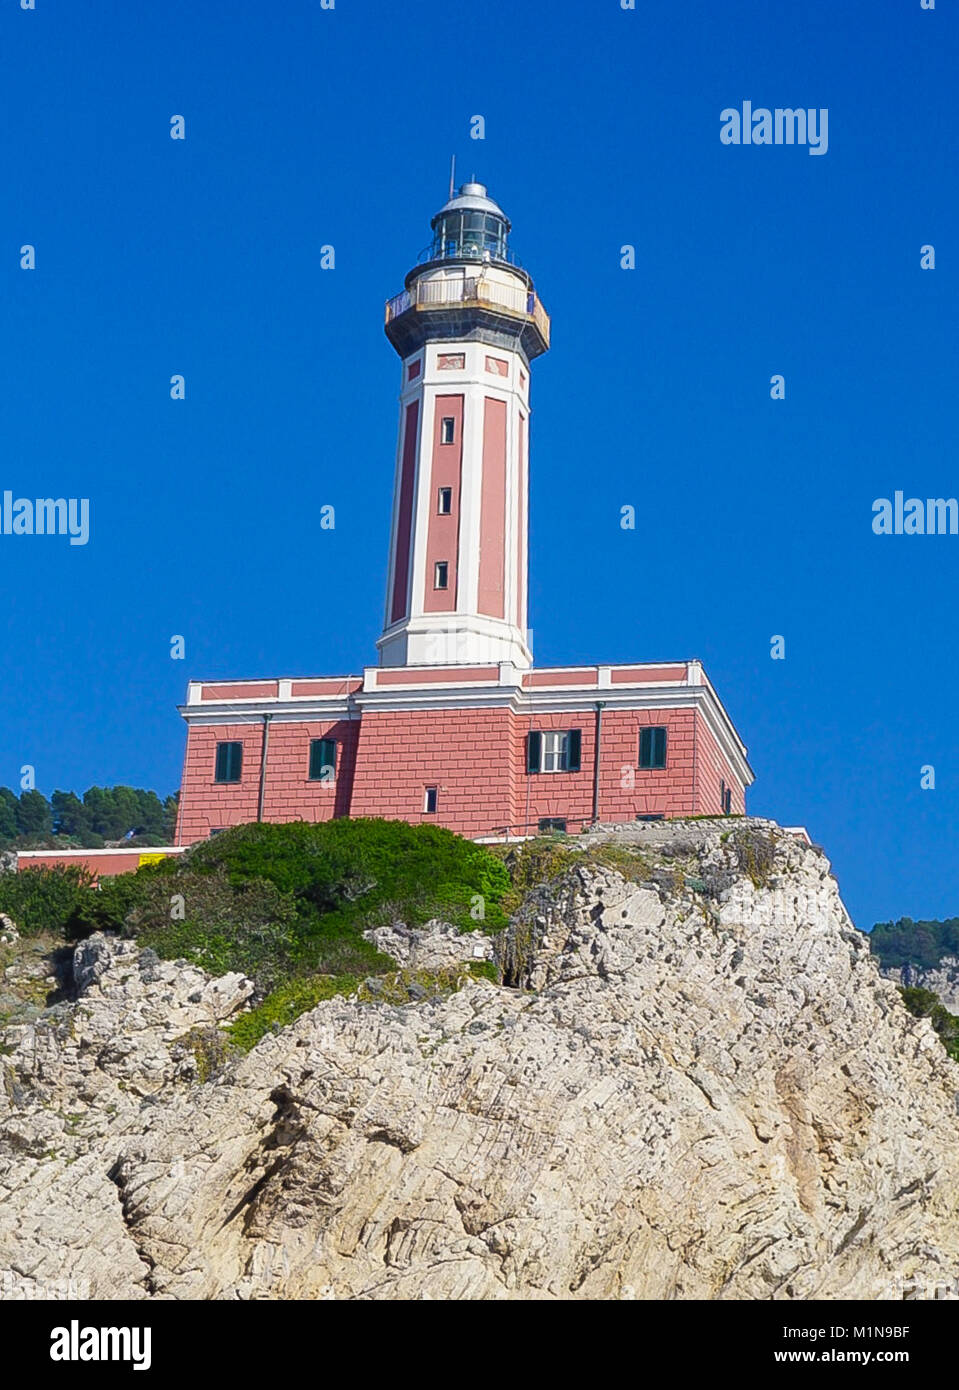 The Lighthouse on the cliff at Punta Carena on the island of Capri, Italy Stock Photo